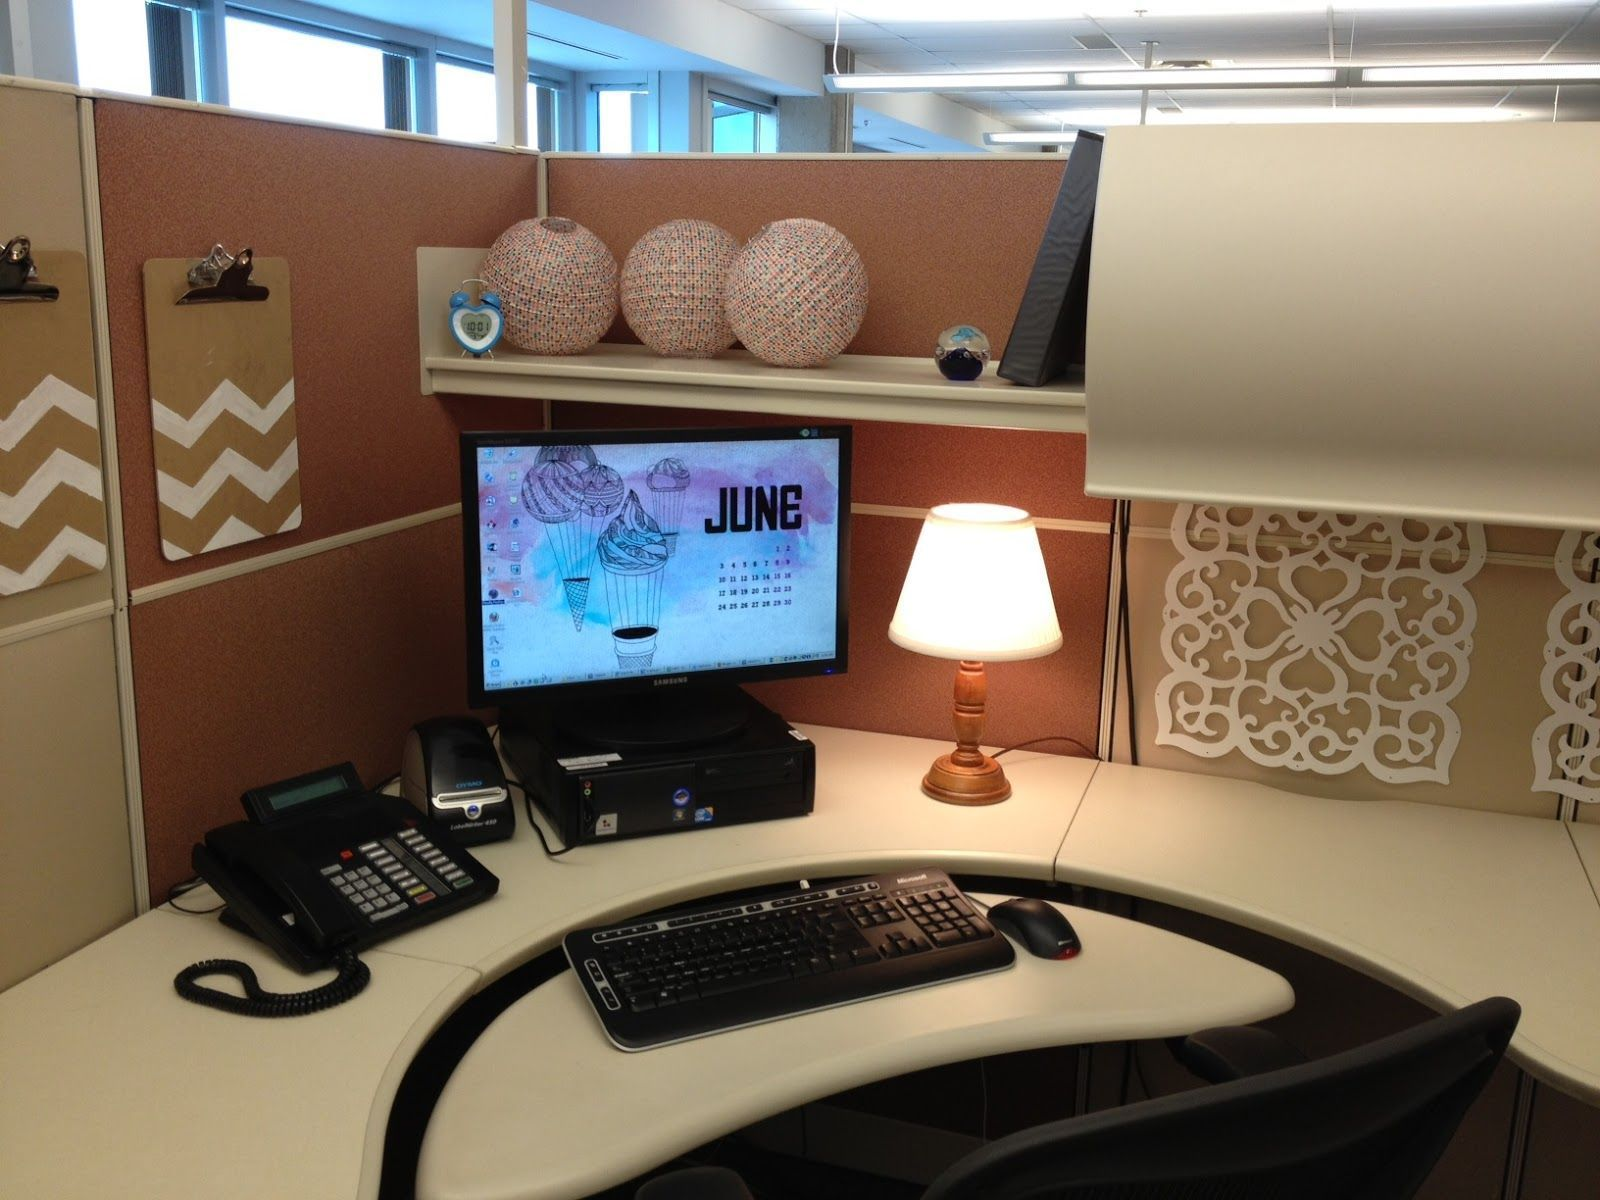 20 Cubicle Decor Ideas to Make Your Office Style Work as Hard as ...